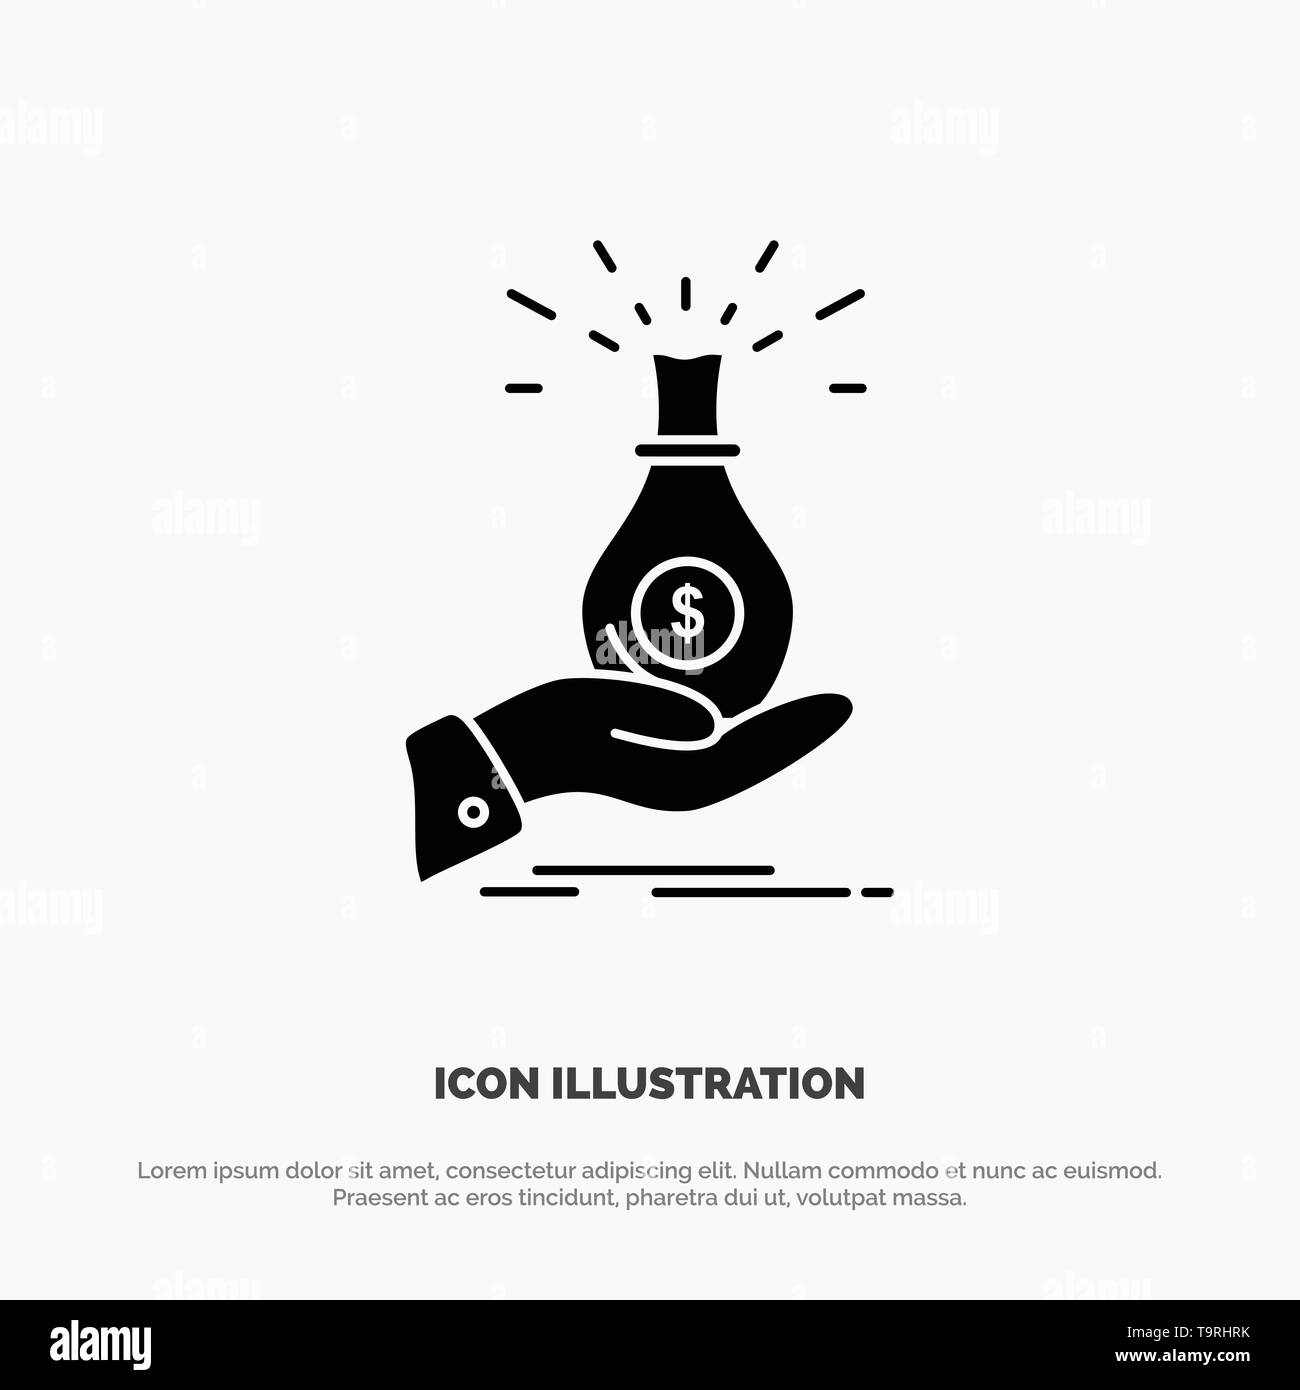 Dollar, Bag, Hand, Business, Capital, Debt, Investment, Savings solid Glyph Icon vector - Stock Image